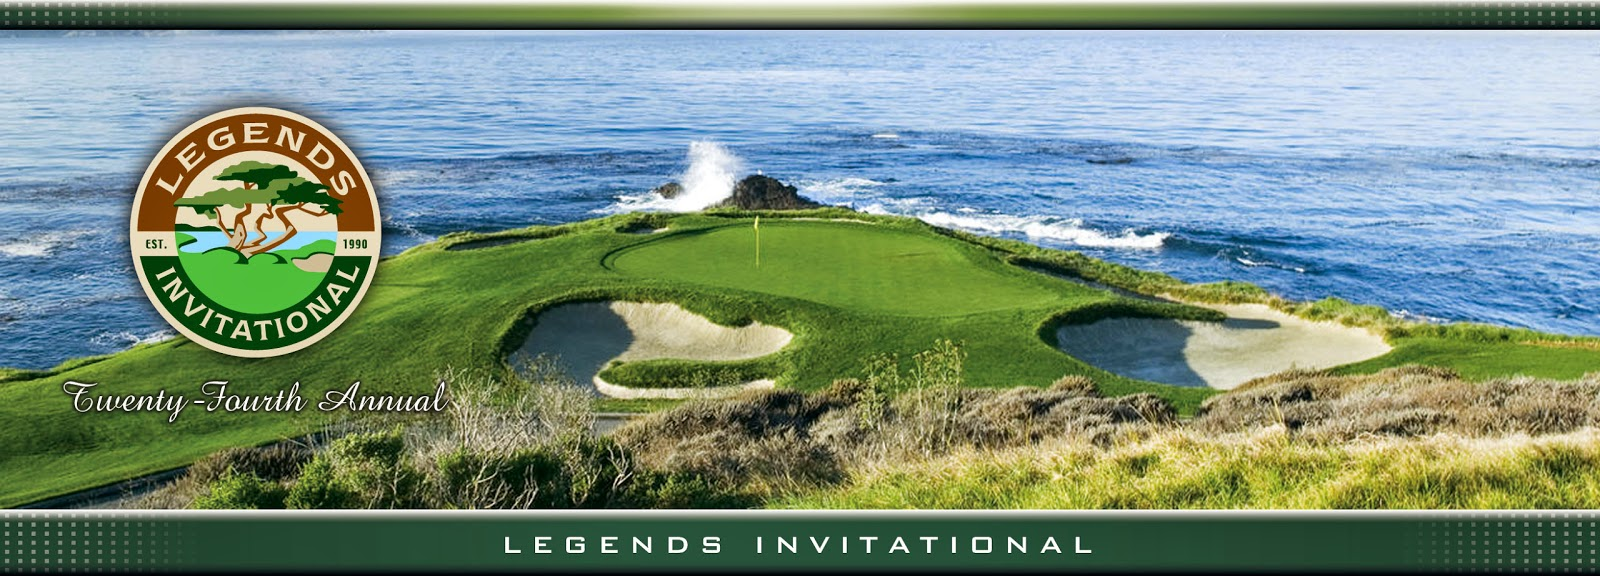 Legends Invitational Golf Event